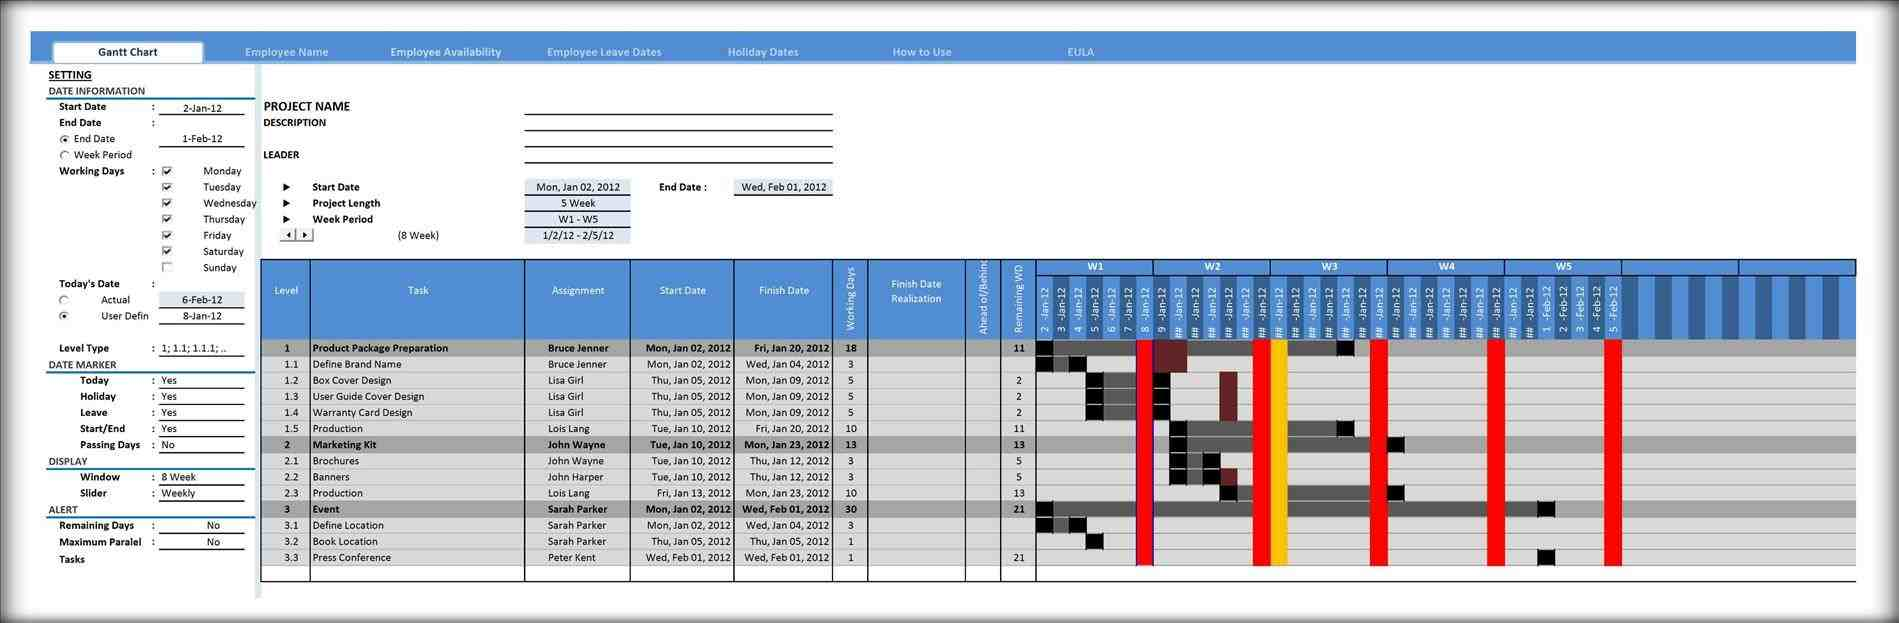 Gantt construction schedule template new project gantt chart rheccosus management plan free download and rhondyca project Project Plan Template Excel Gantt